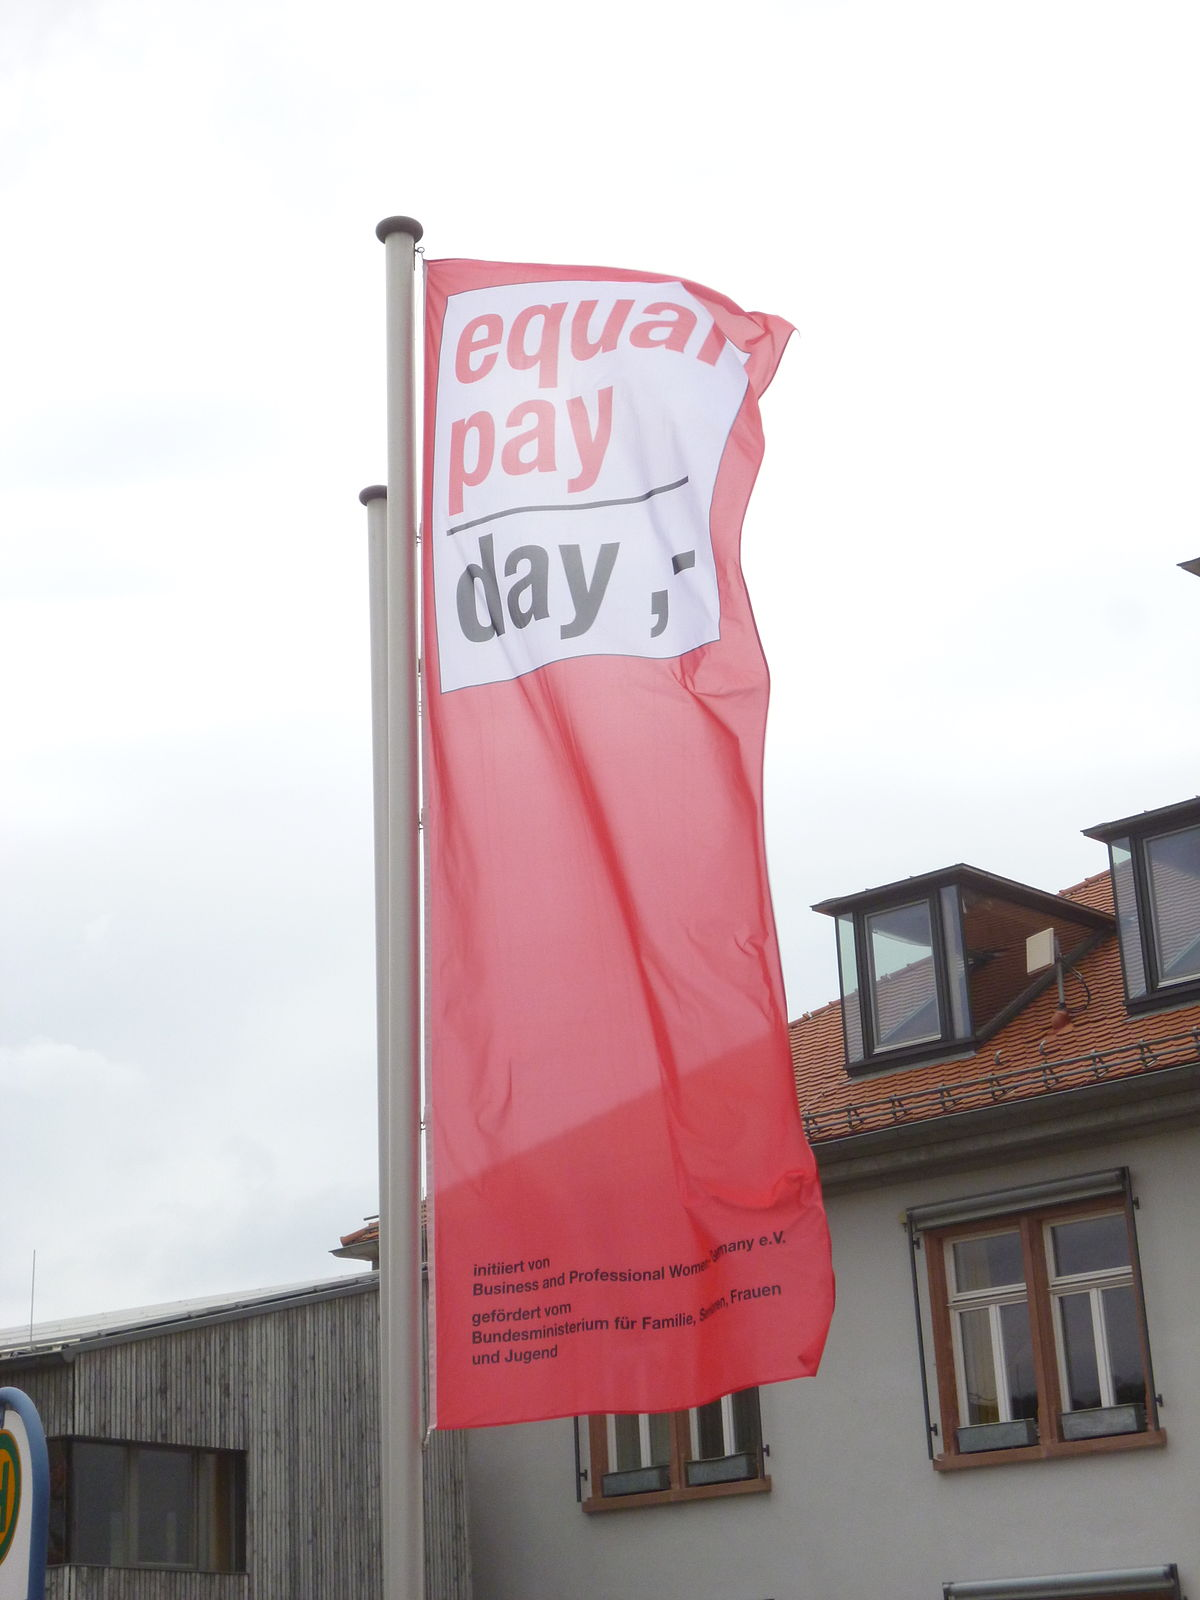 Gnome Garden: Equal Pay Day